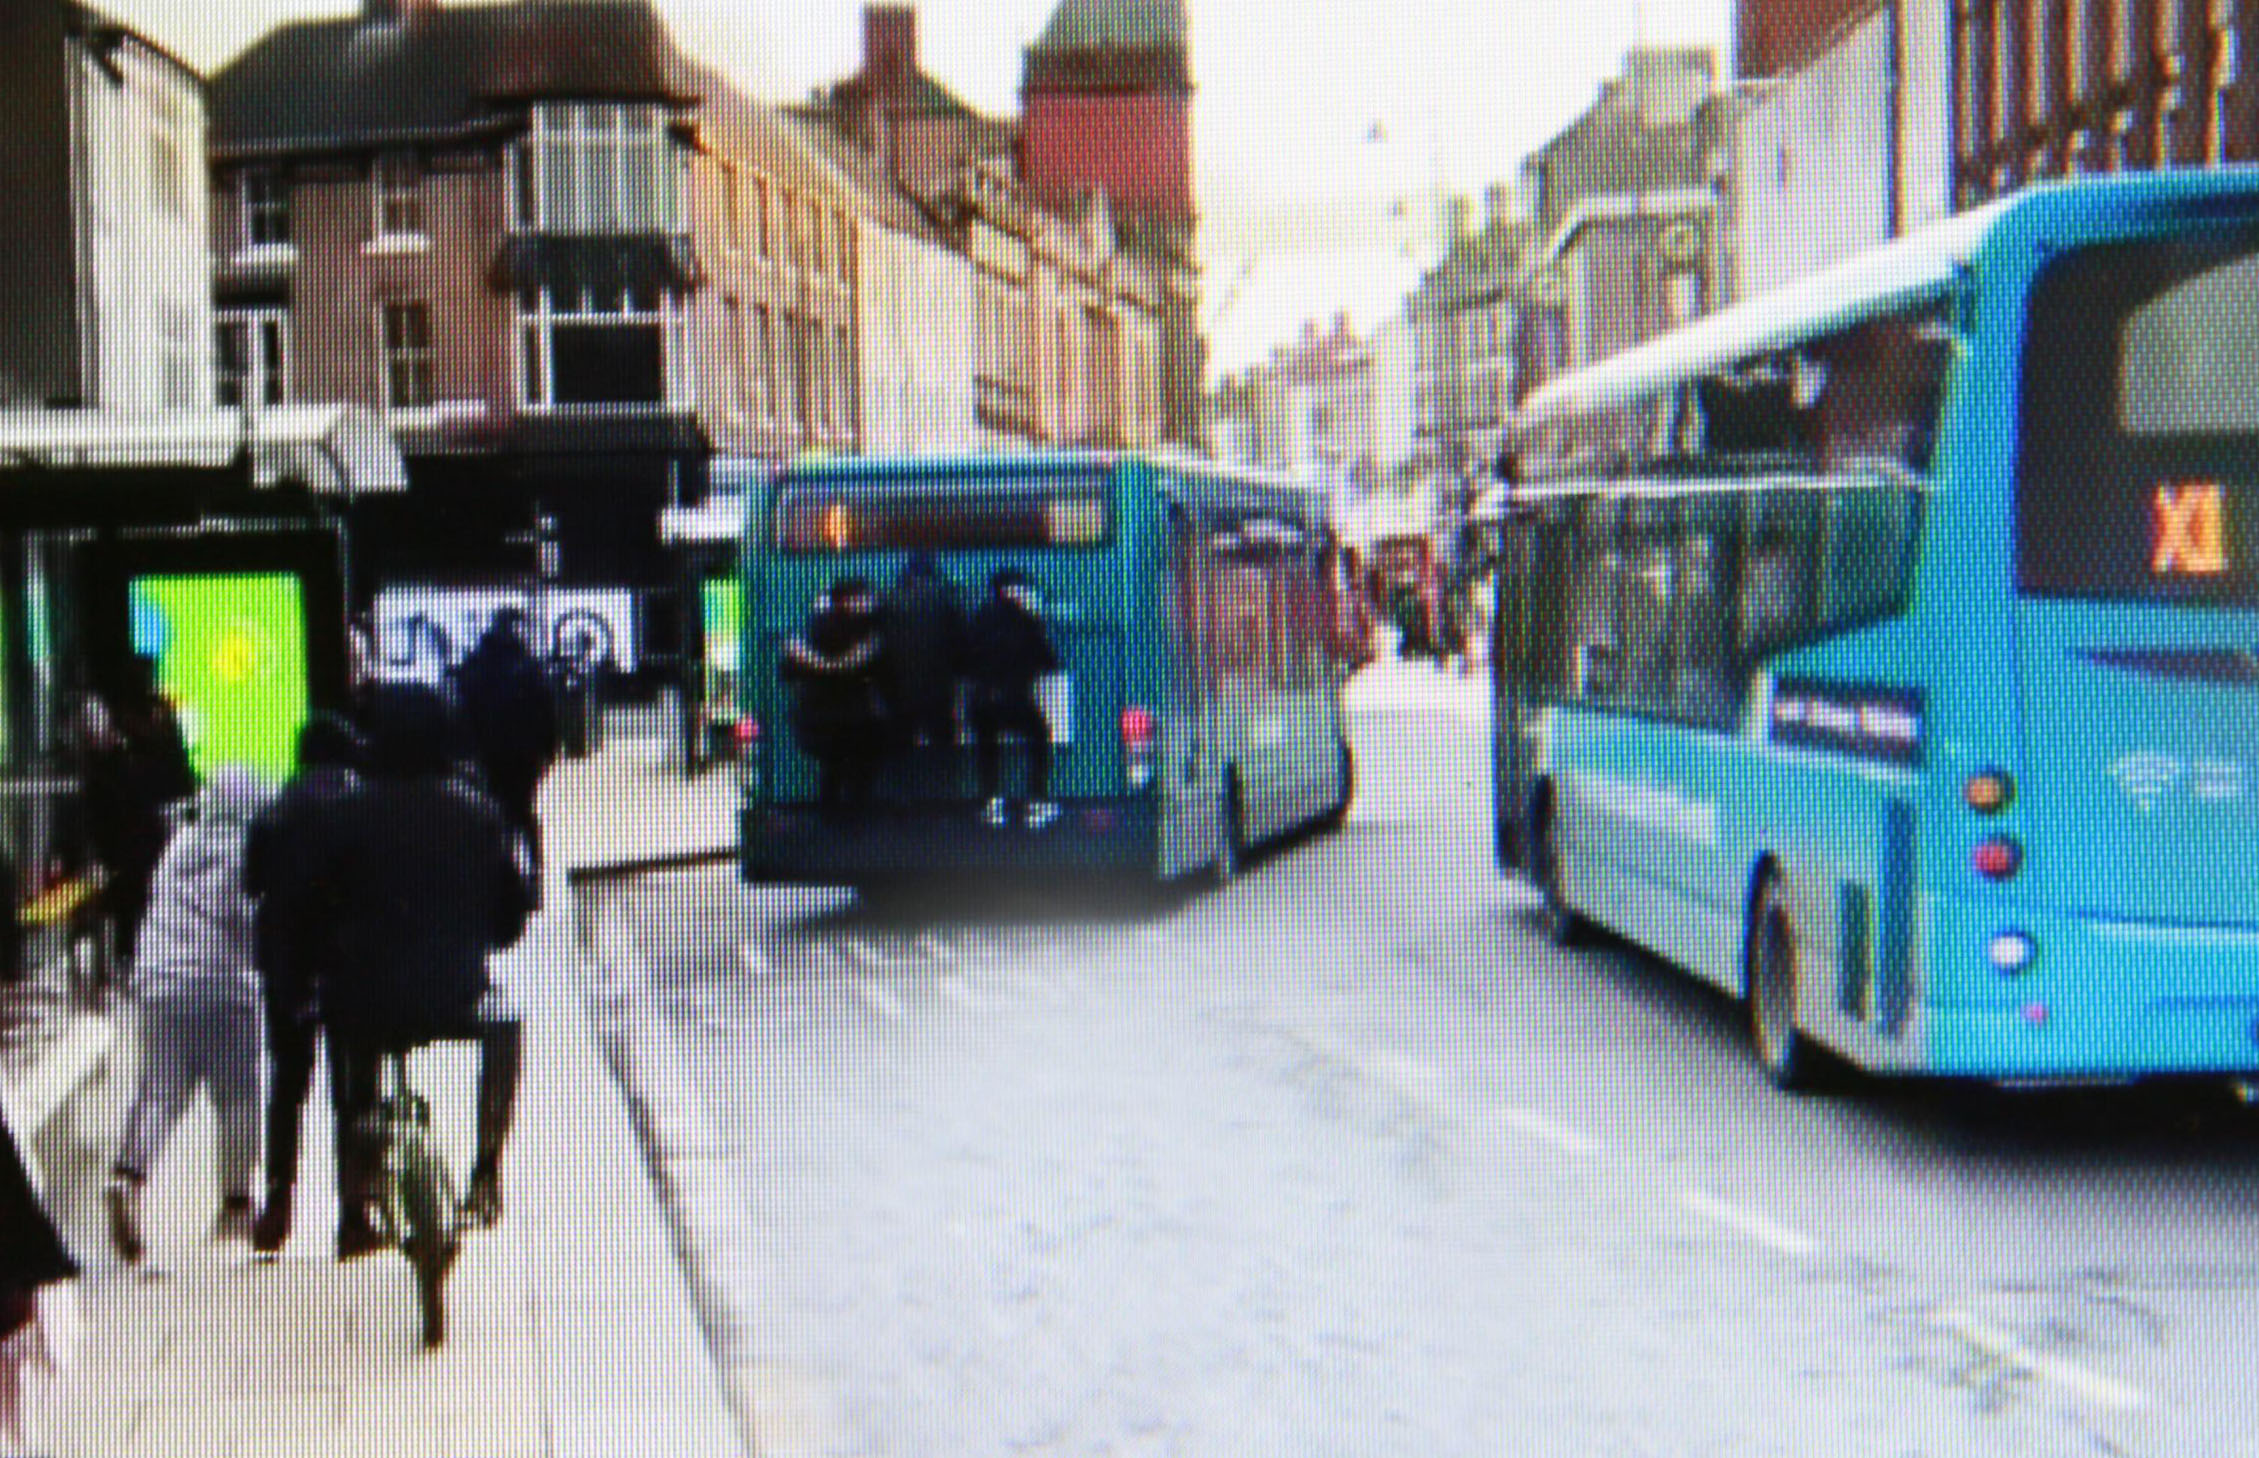 DANGEROUS ACT: Teenagers seen 'clinging' onto bus as it pulls away, an act which shocked John Rutherford, above